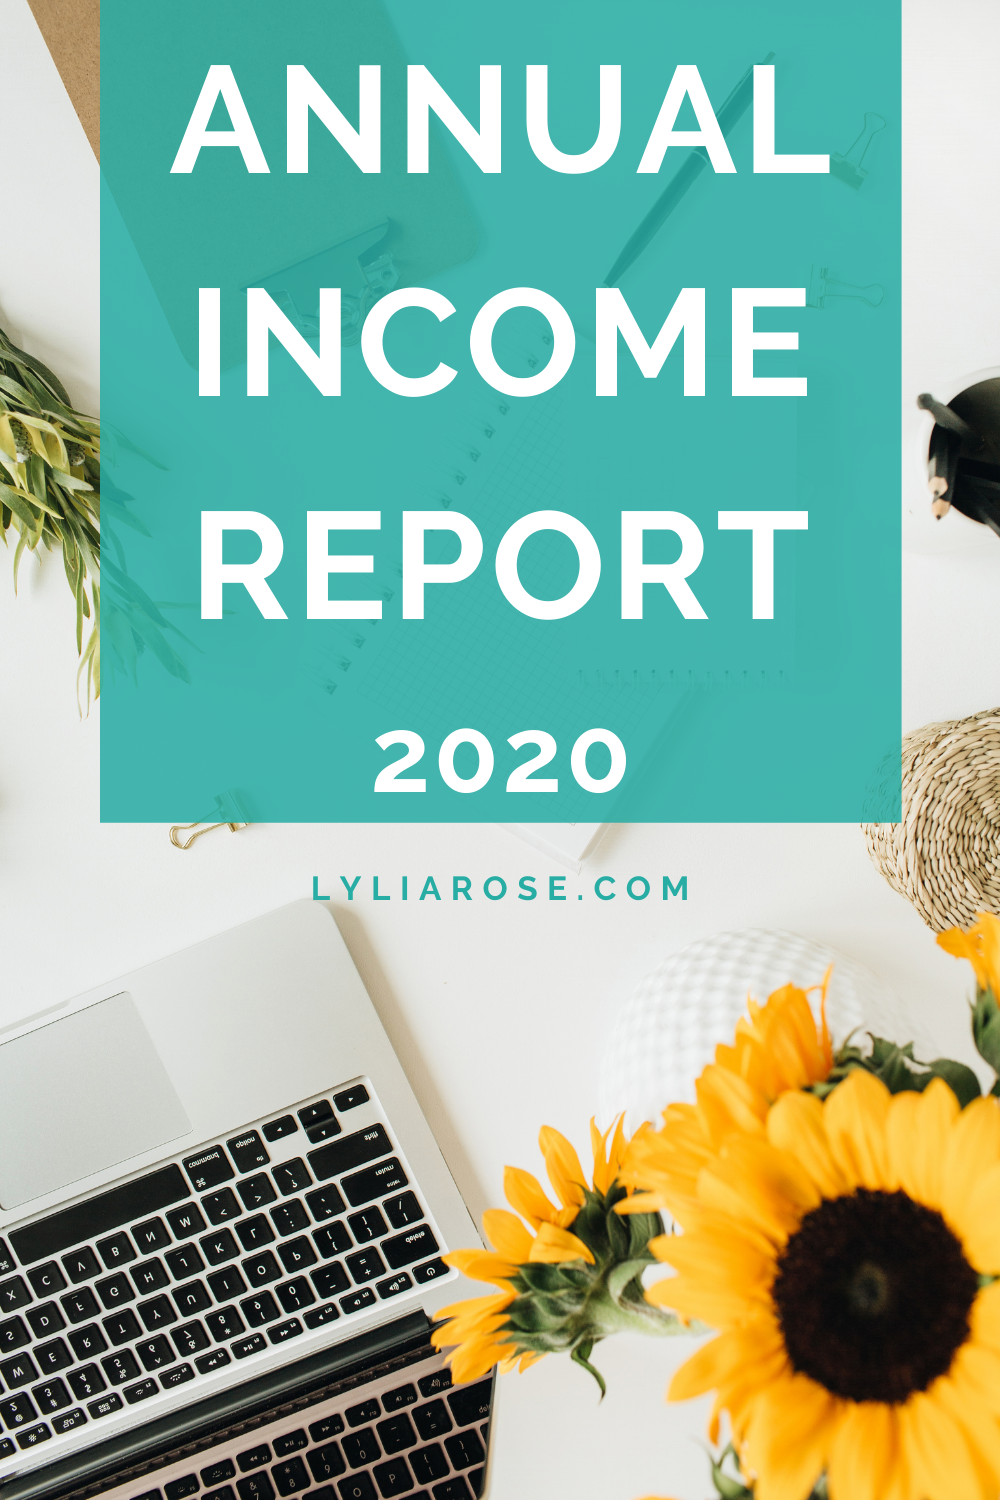 Annual income report how I made 45000 pounds online + at home in 2020